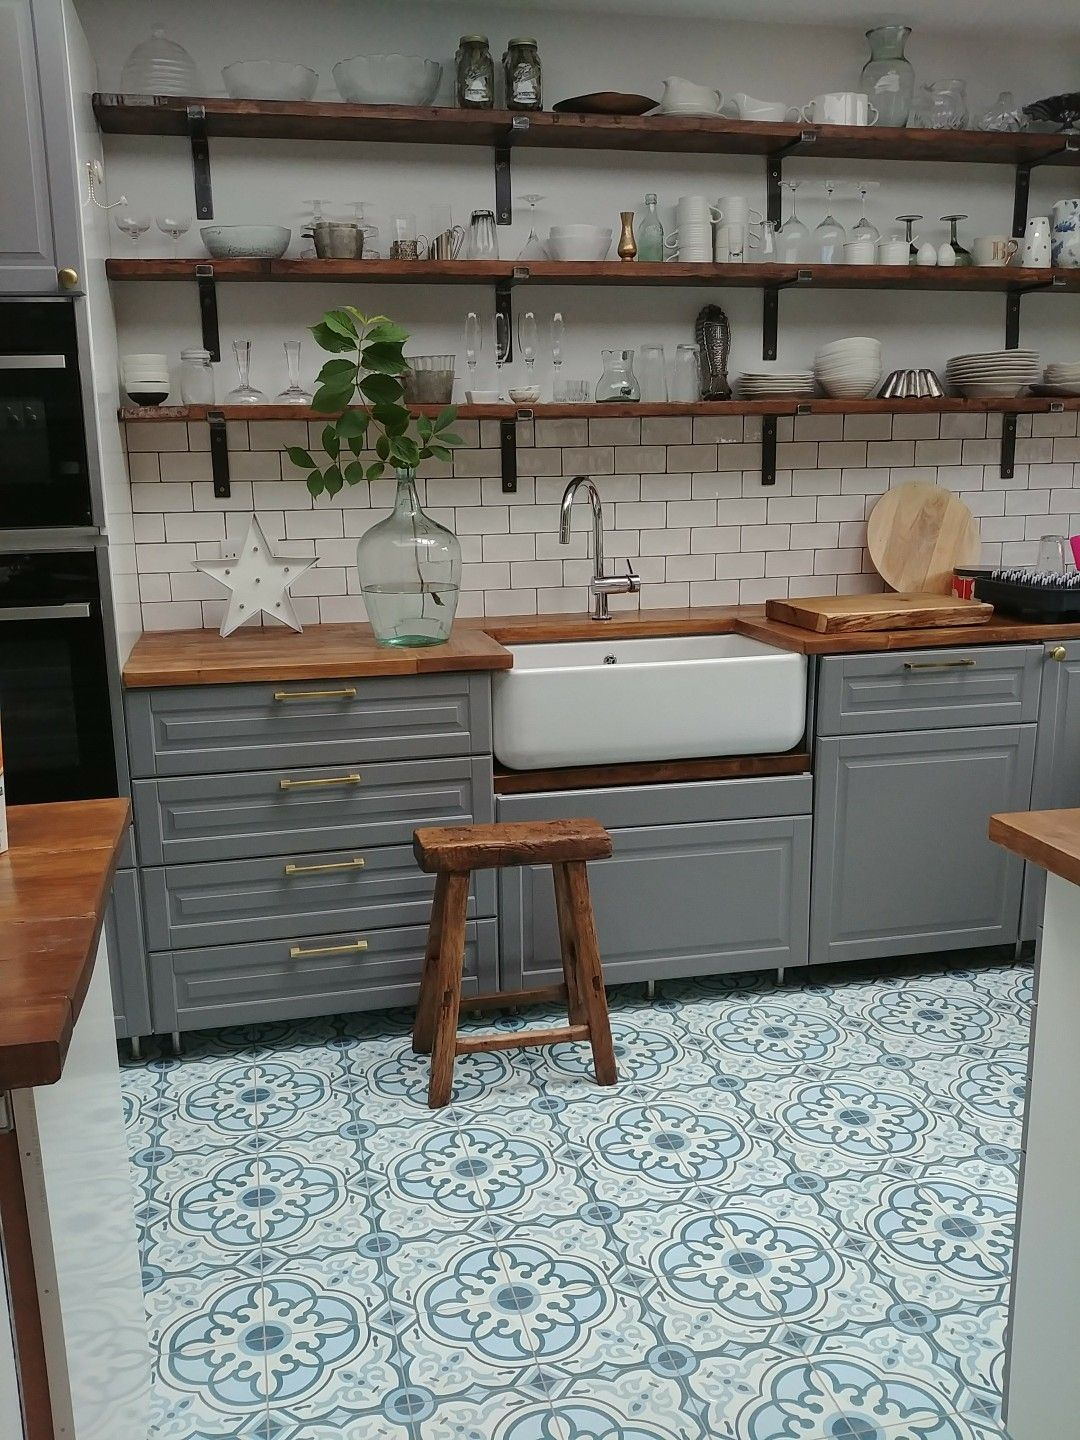 Ikea Küchen Block Ikea Bodbyn Kitchen Grey With White Metro Tiles, Butler